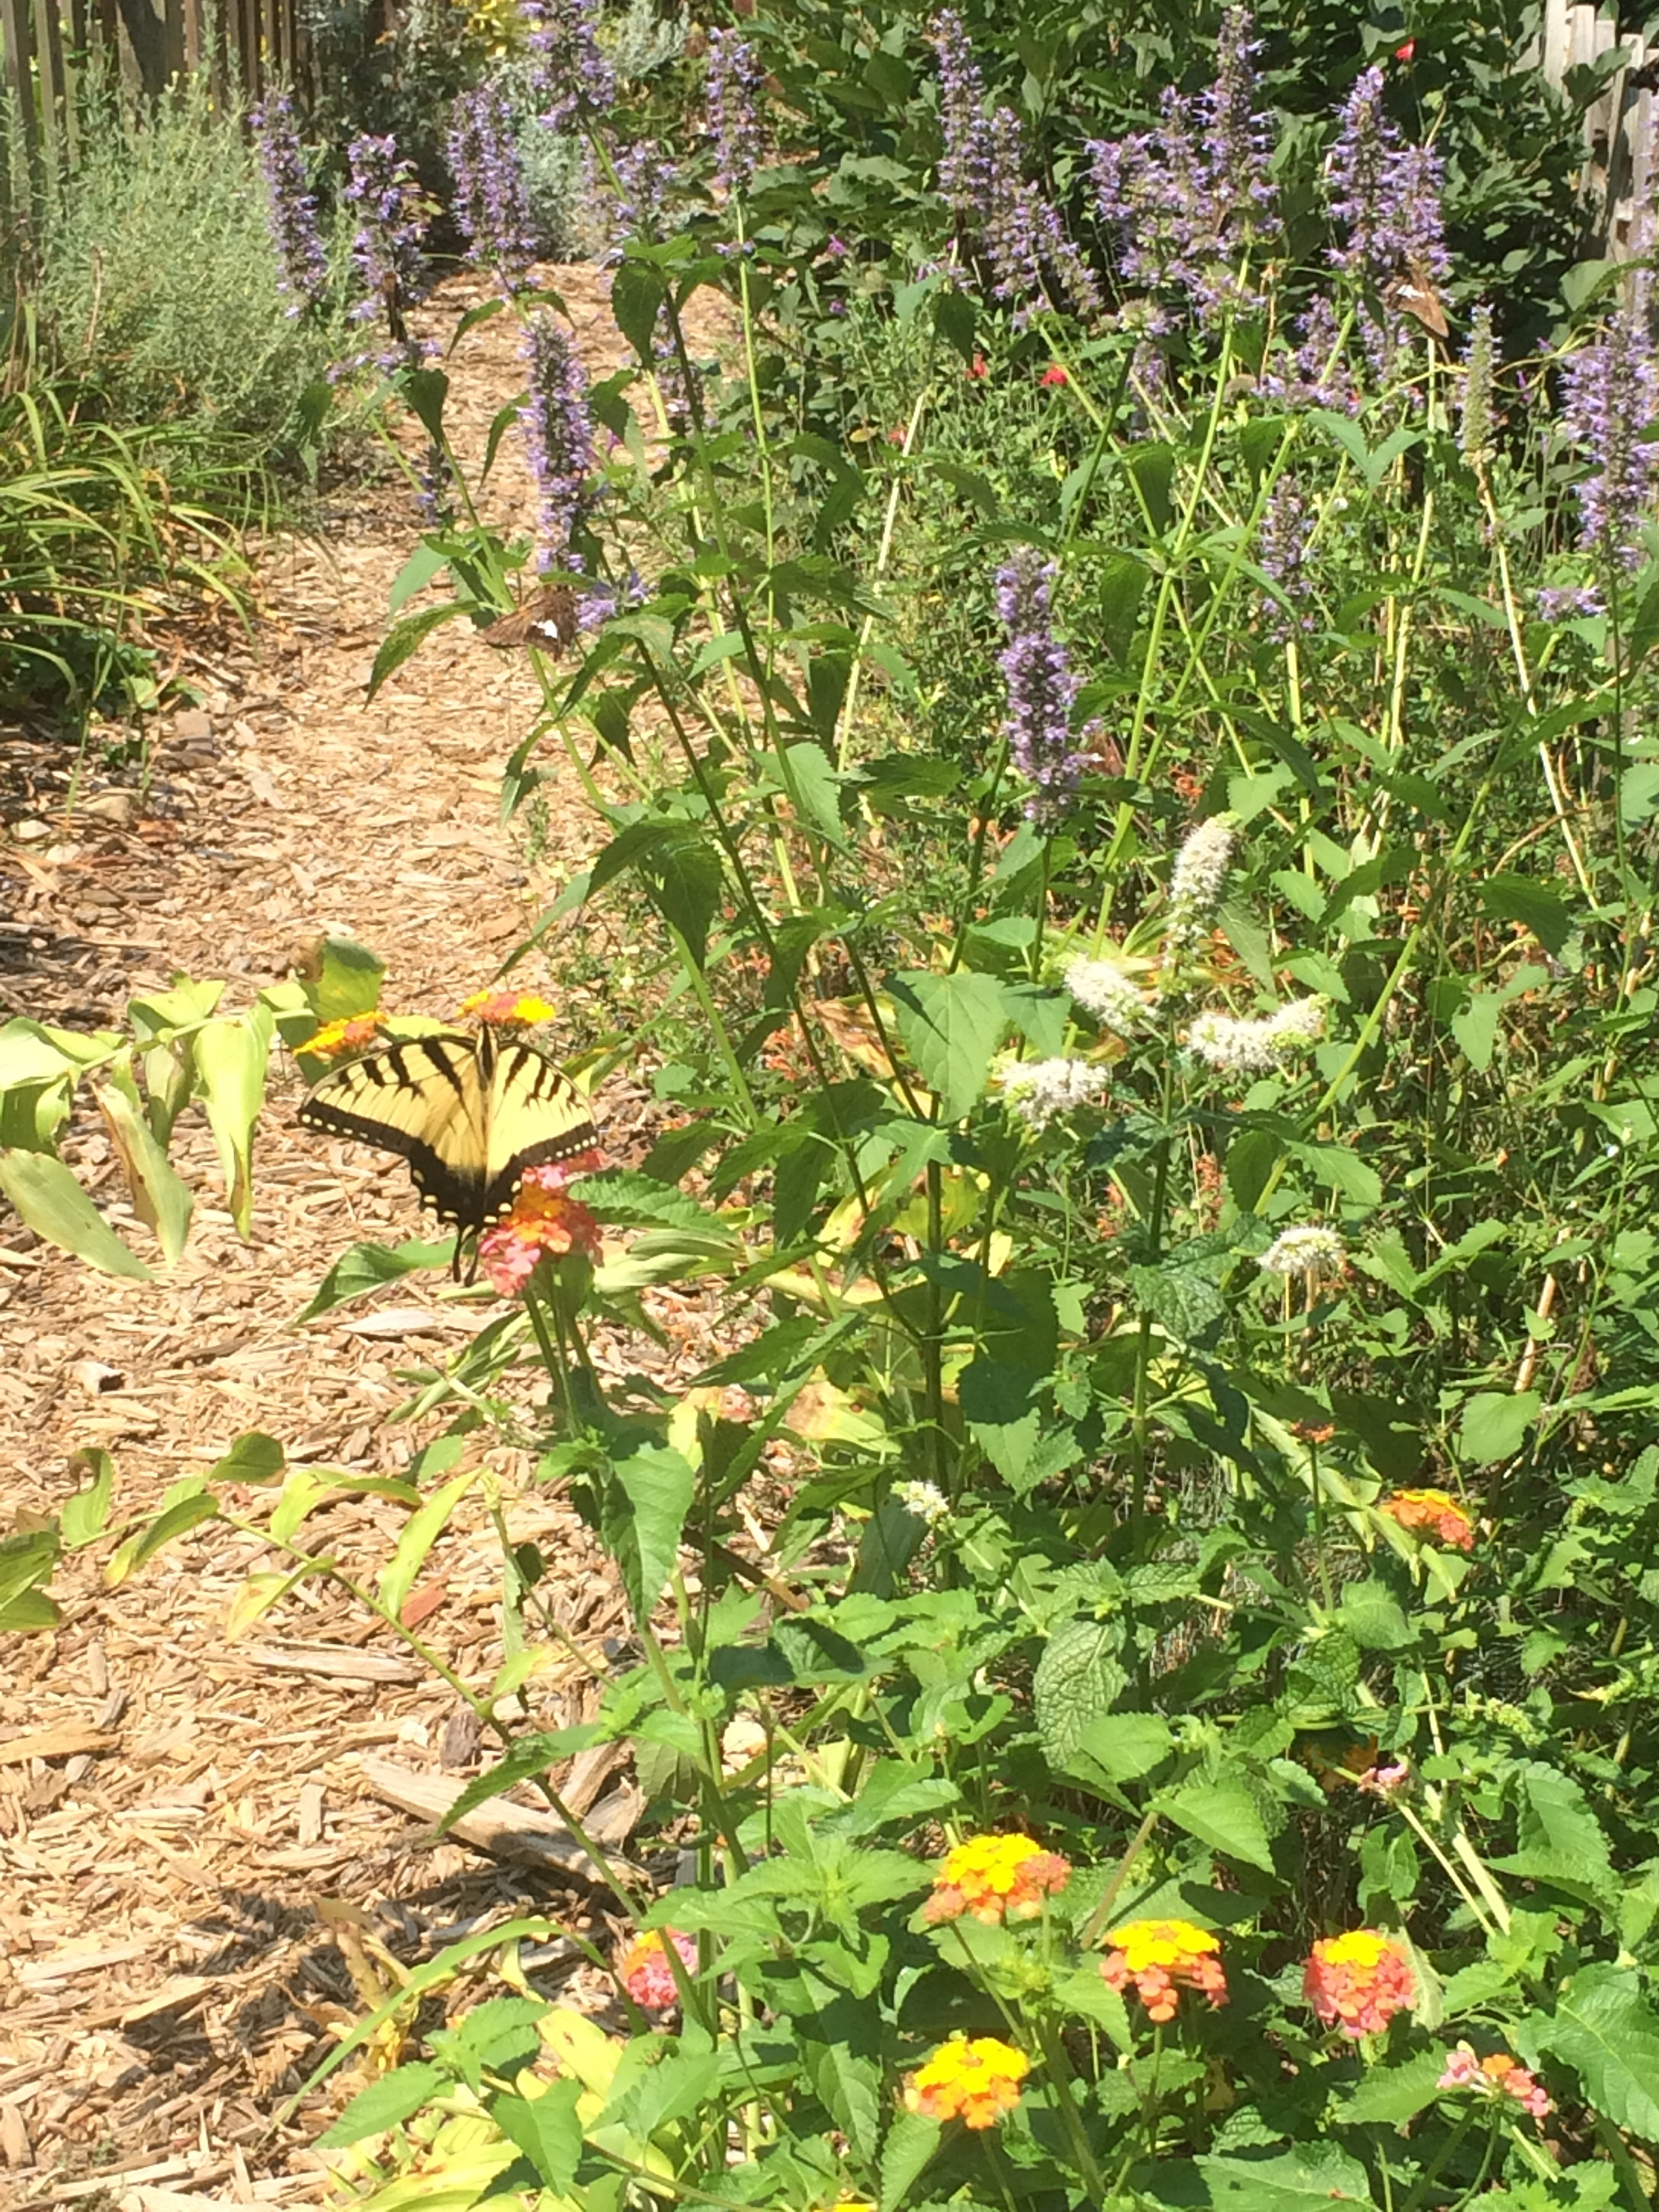 Enjoy the flowers and butterfly visitors in our cabin gardens!